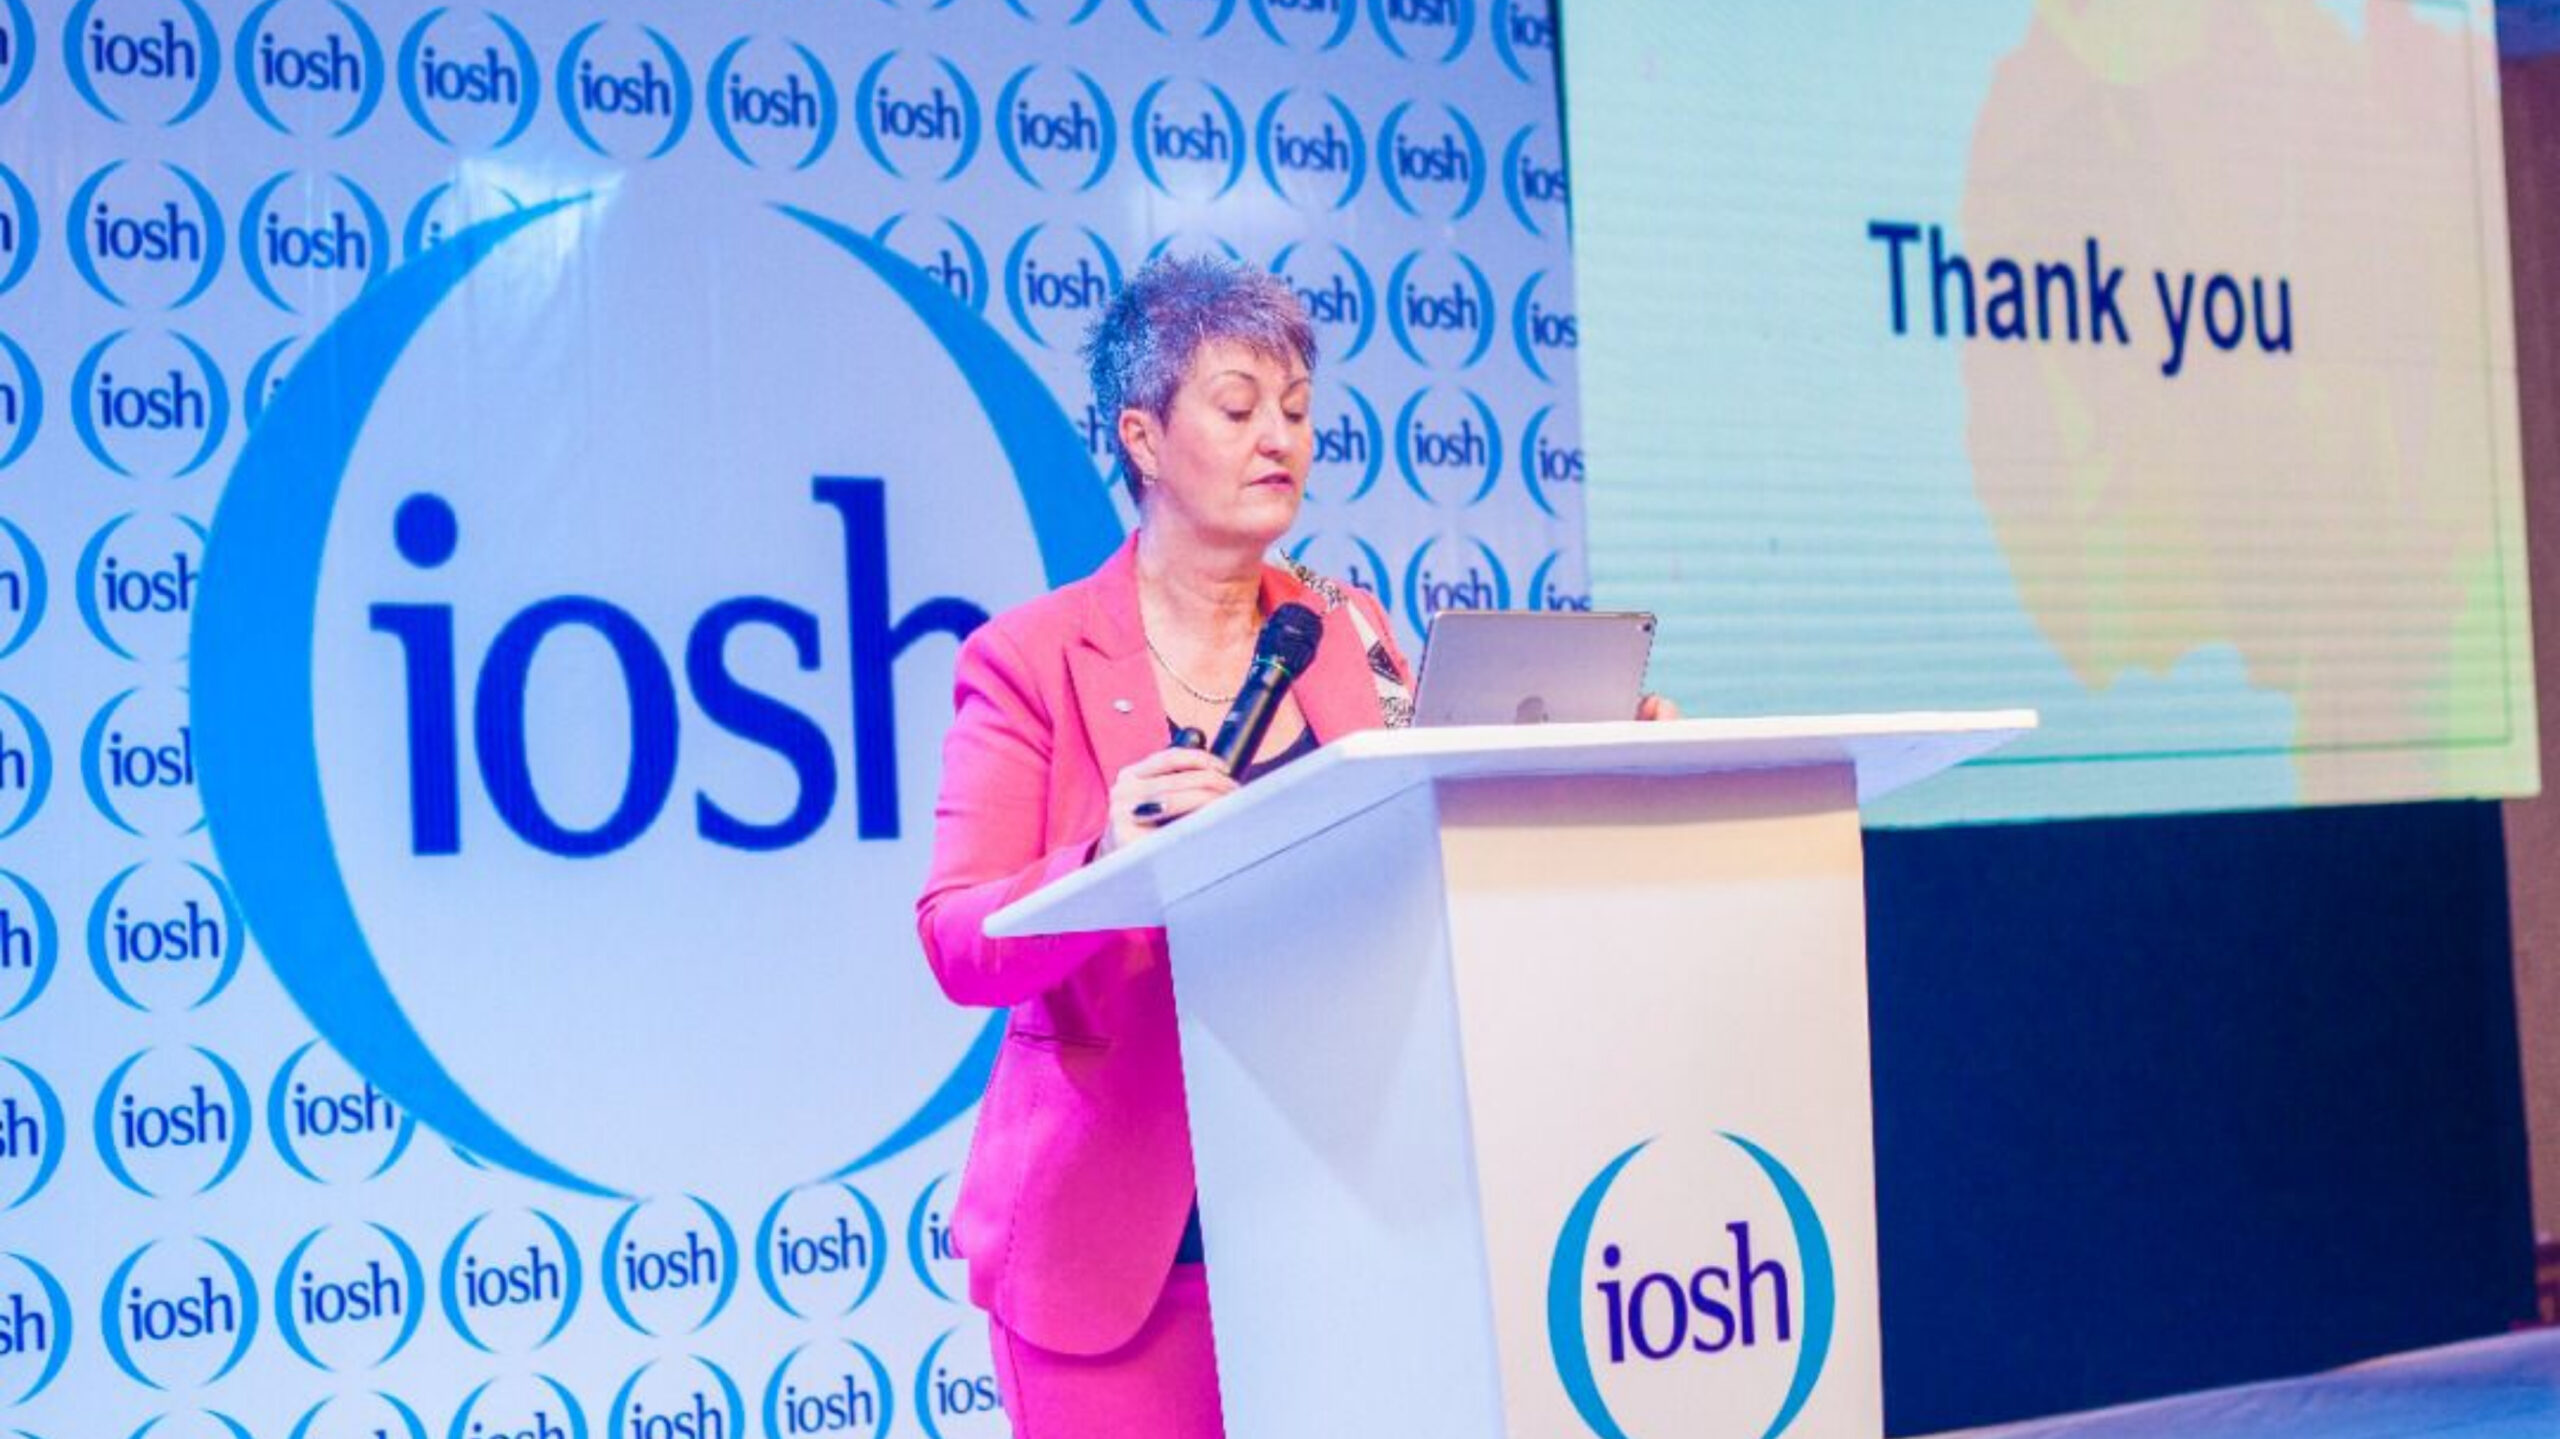 Chartered Body For Safety & Health – IOSH To Hold West Africa Conference In September